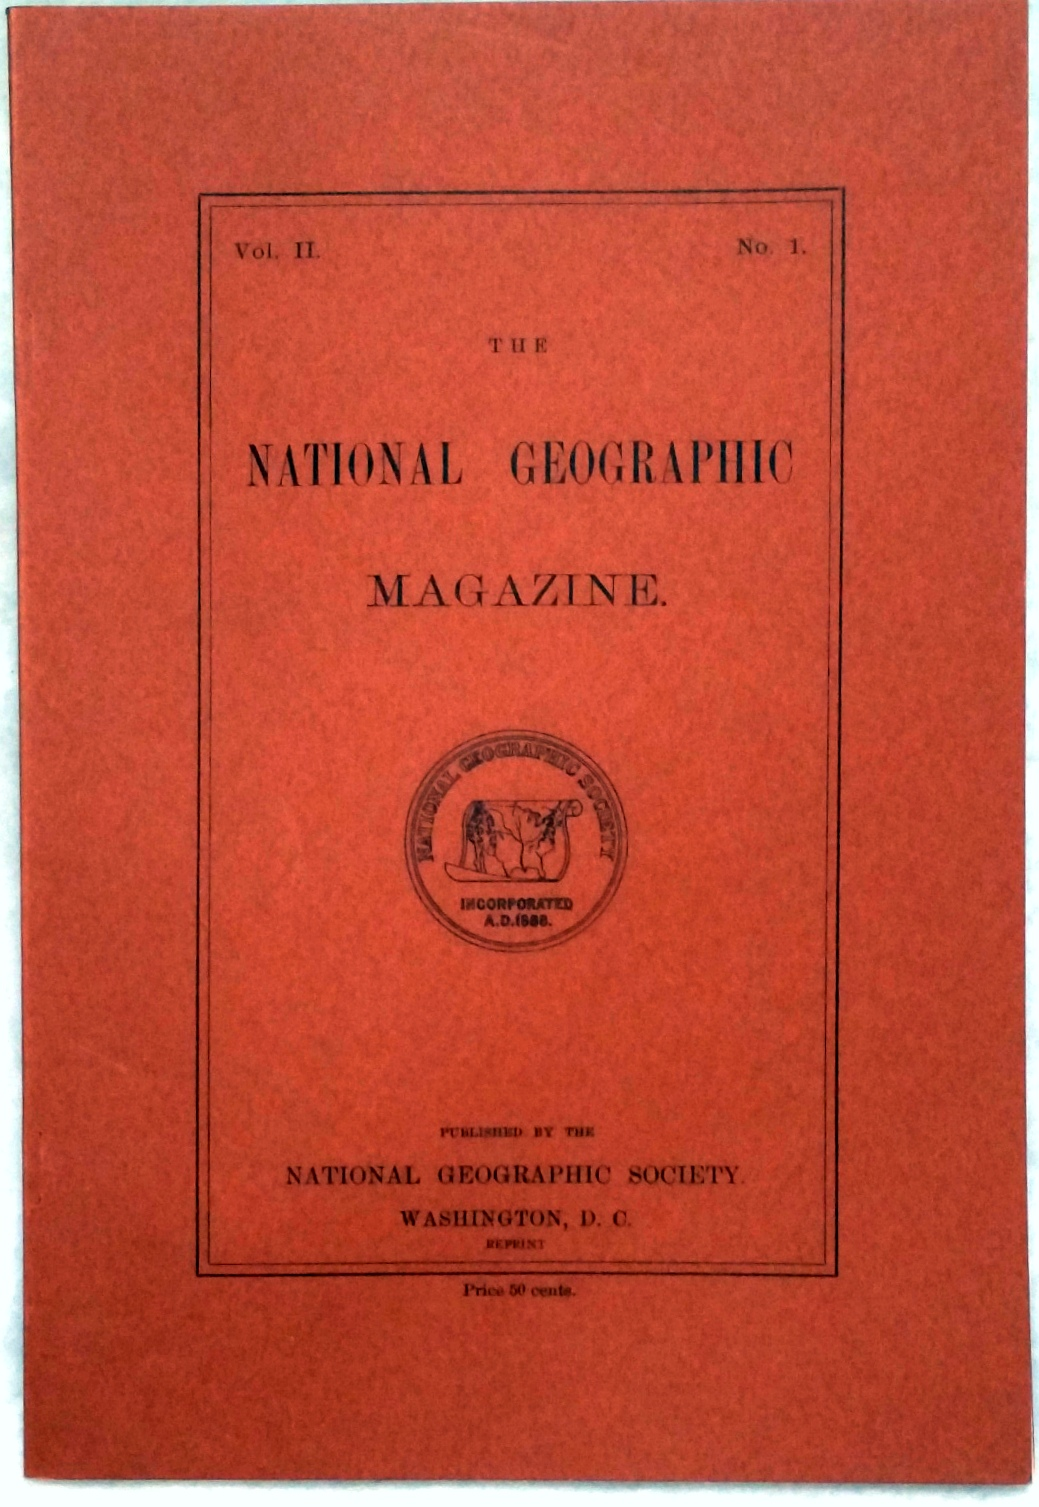 Image for The National Geographic Magazine, Vol II. No. 1